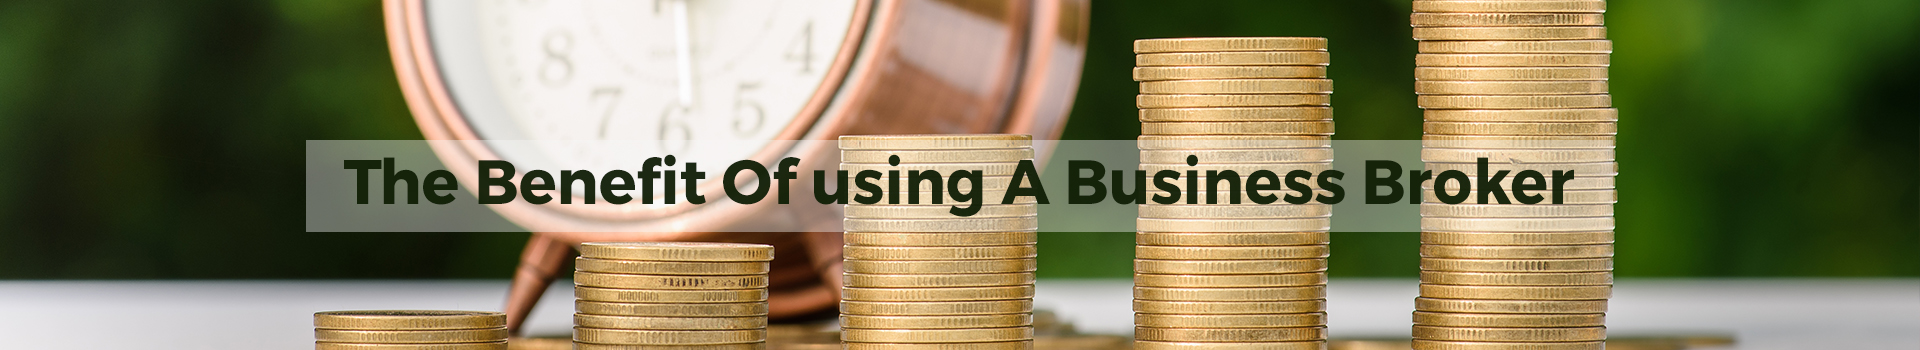 The Benefit Of Using A Business Broker